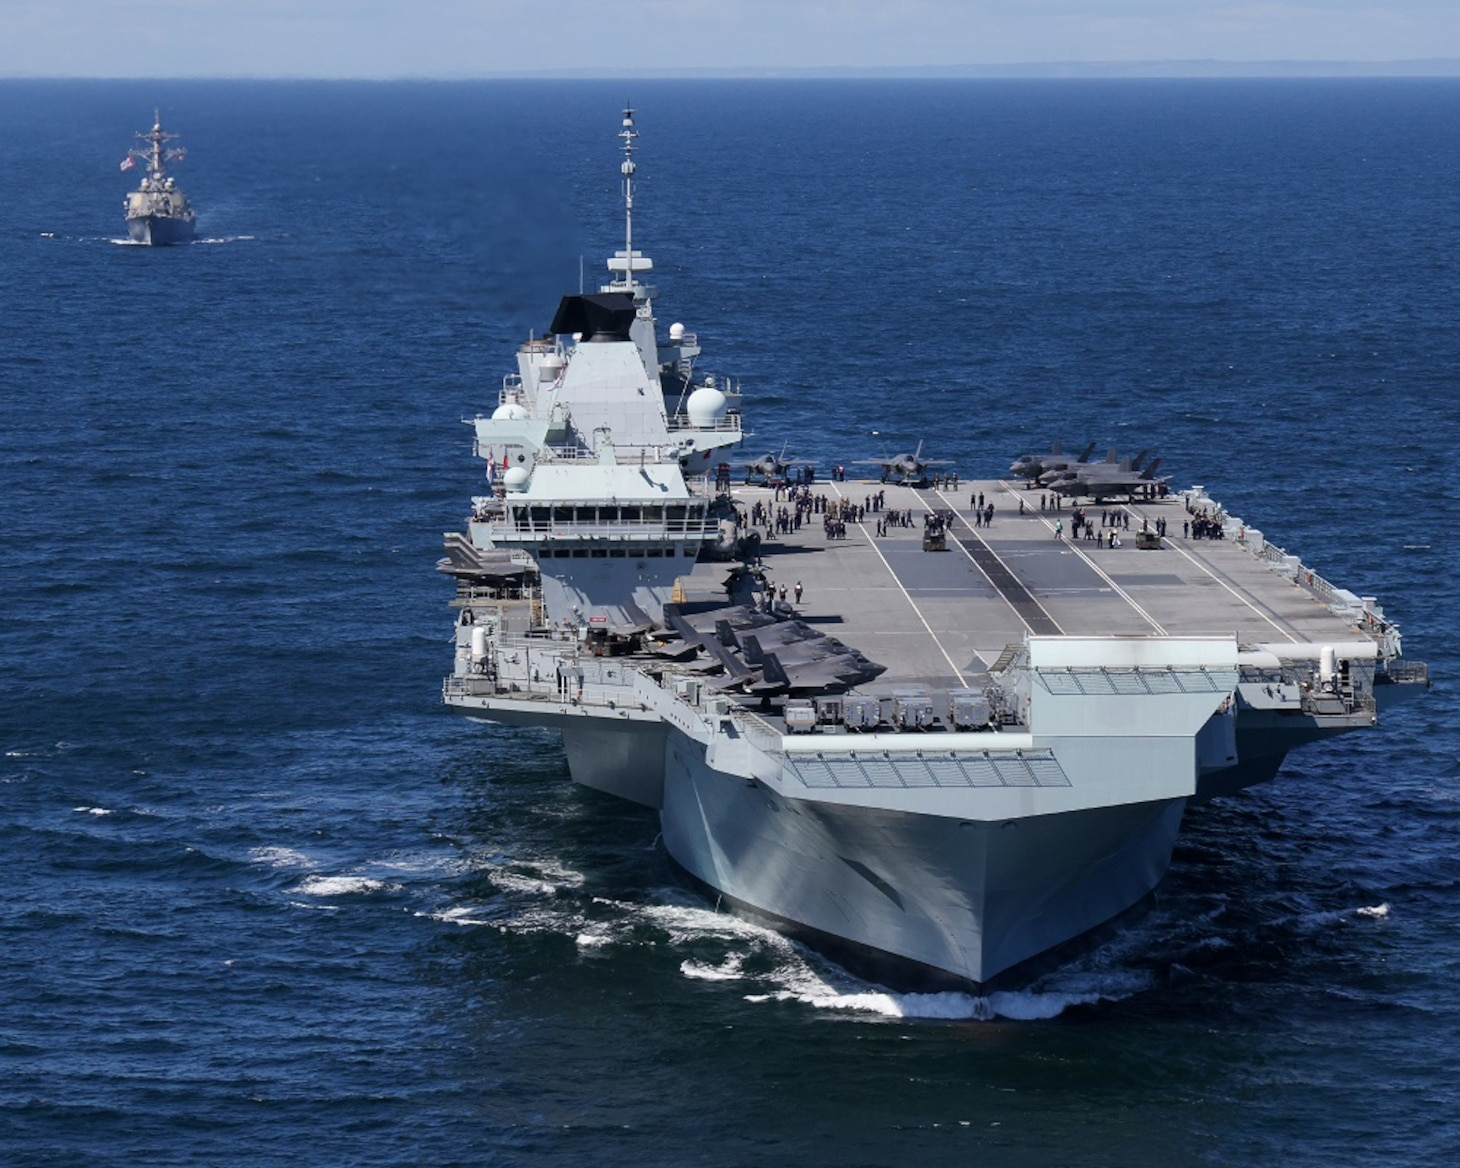 HMS Prince of Wales and HMS Queen Elizabeth pictured at sea for the first time with USS The Sullivans.